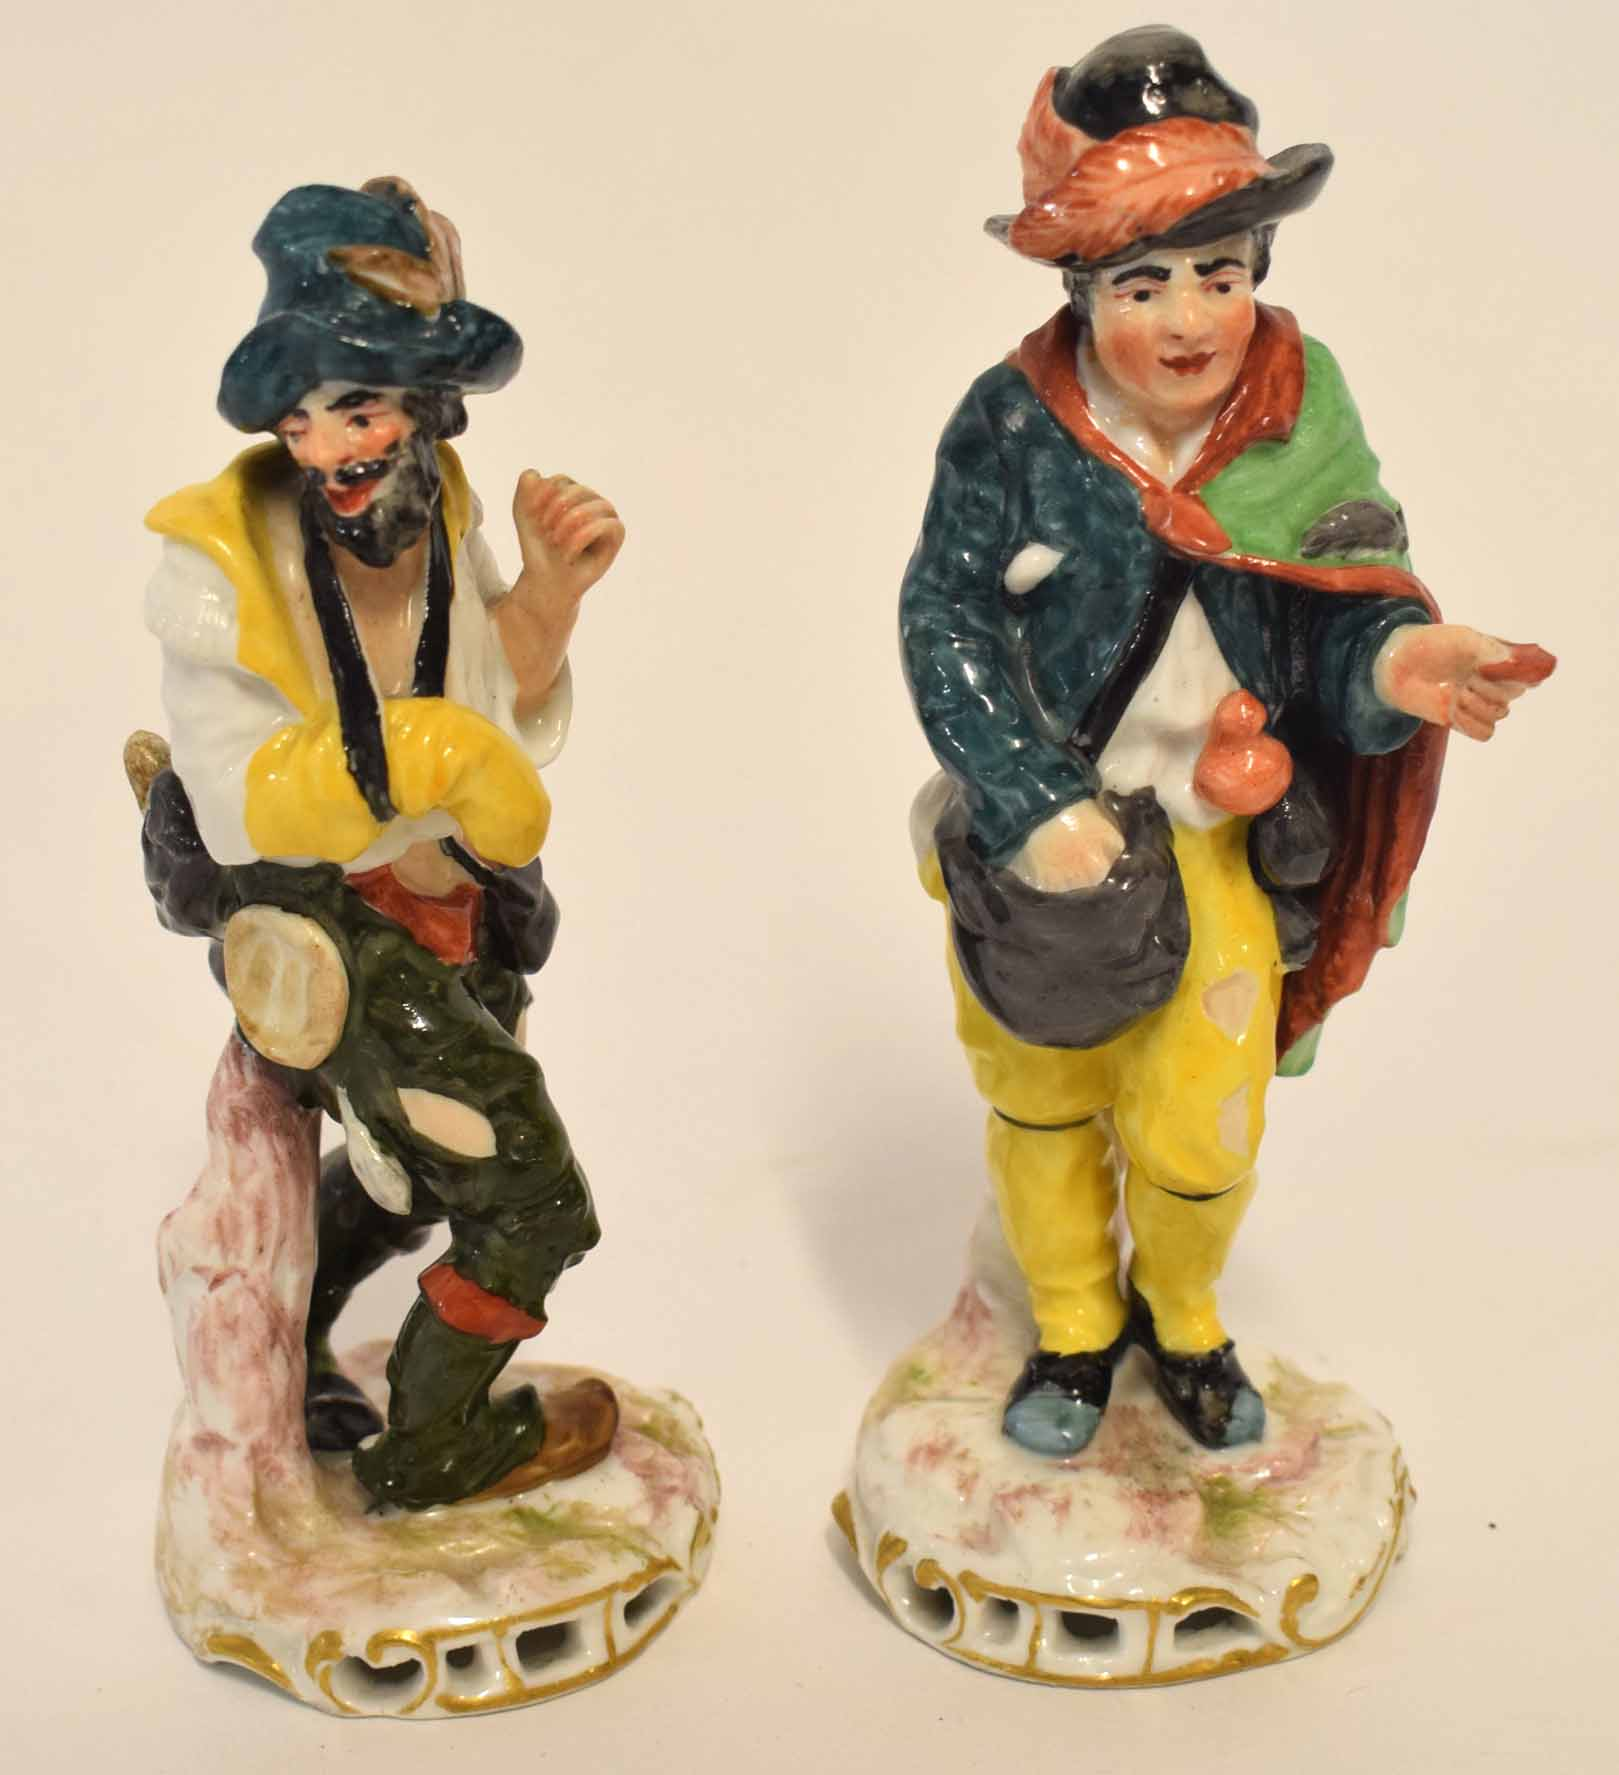 Lot 99 - Group of two Continental porcelain figurines, after Meissen, possibly Sitzendorf, one modelled as